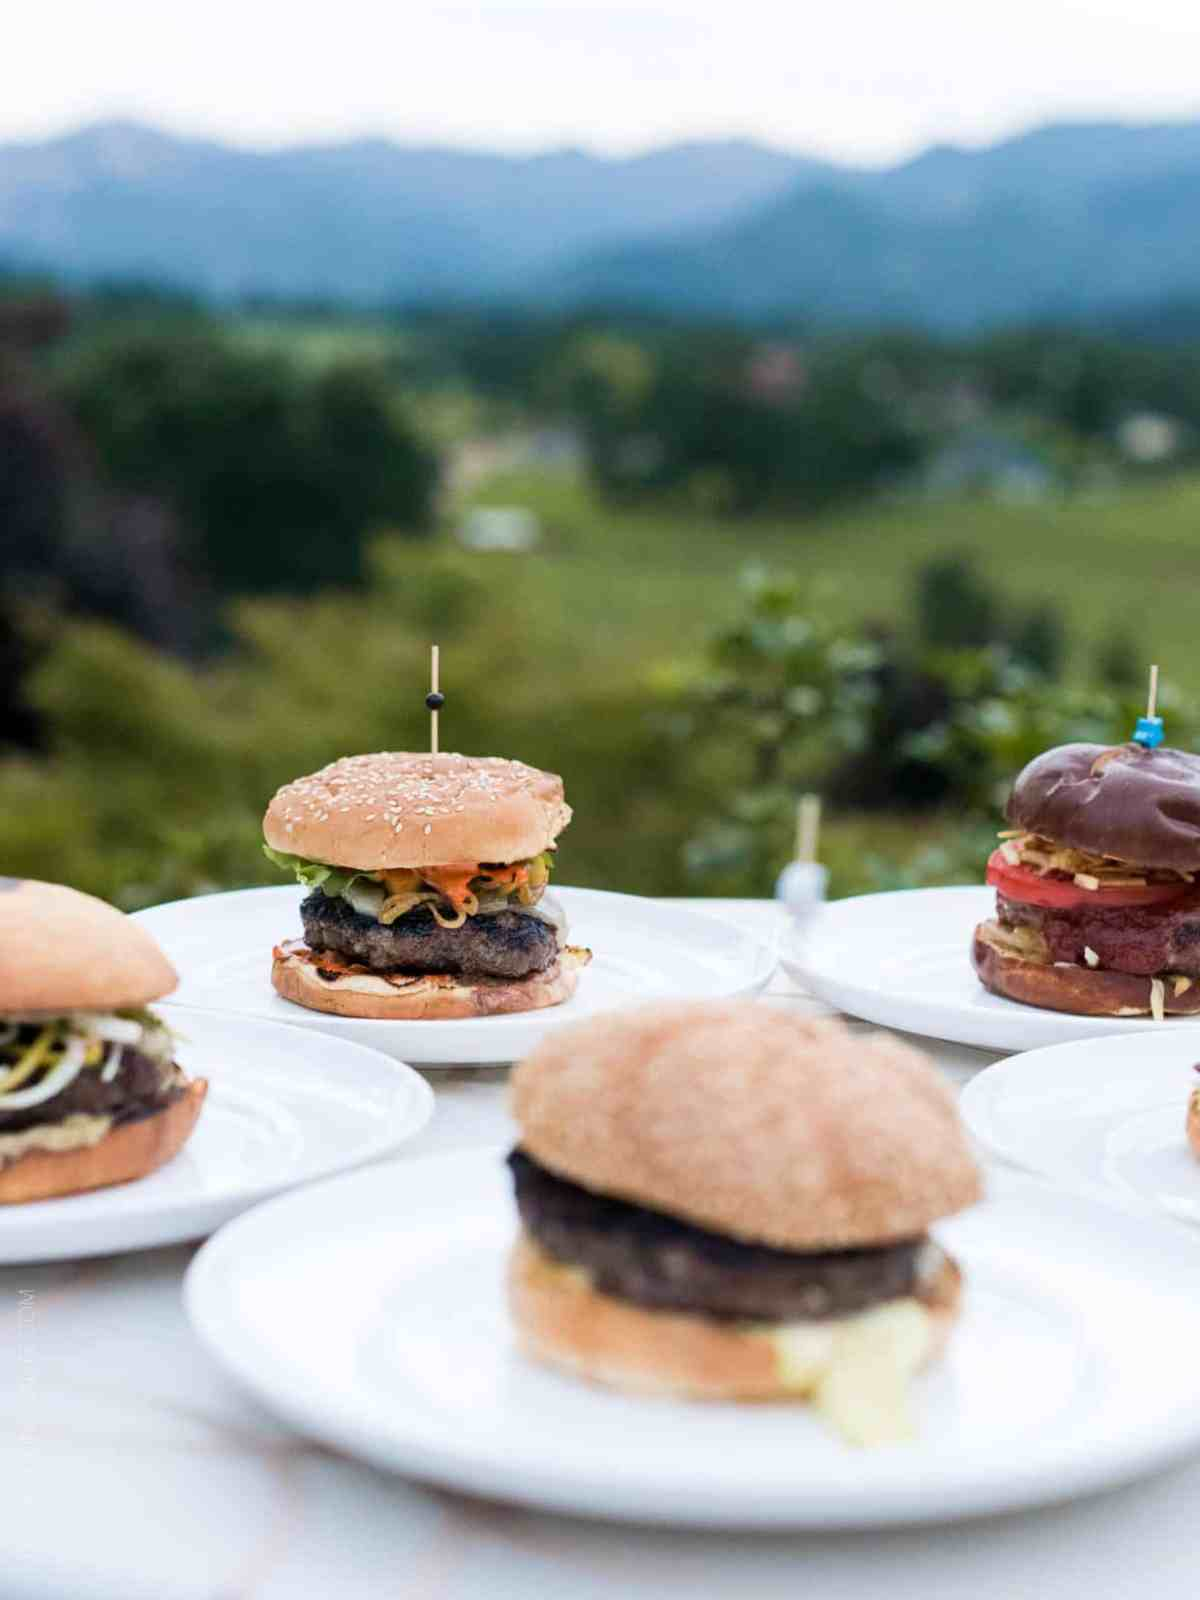 Finalist burgers at the Sutter Home 25th Annual Build a Better Burger Cookoff.